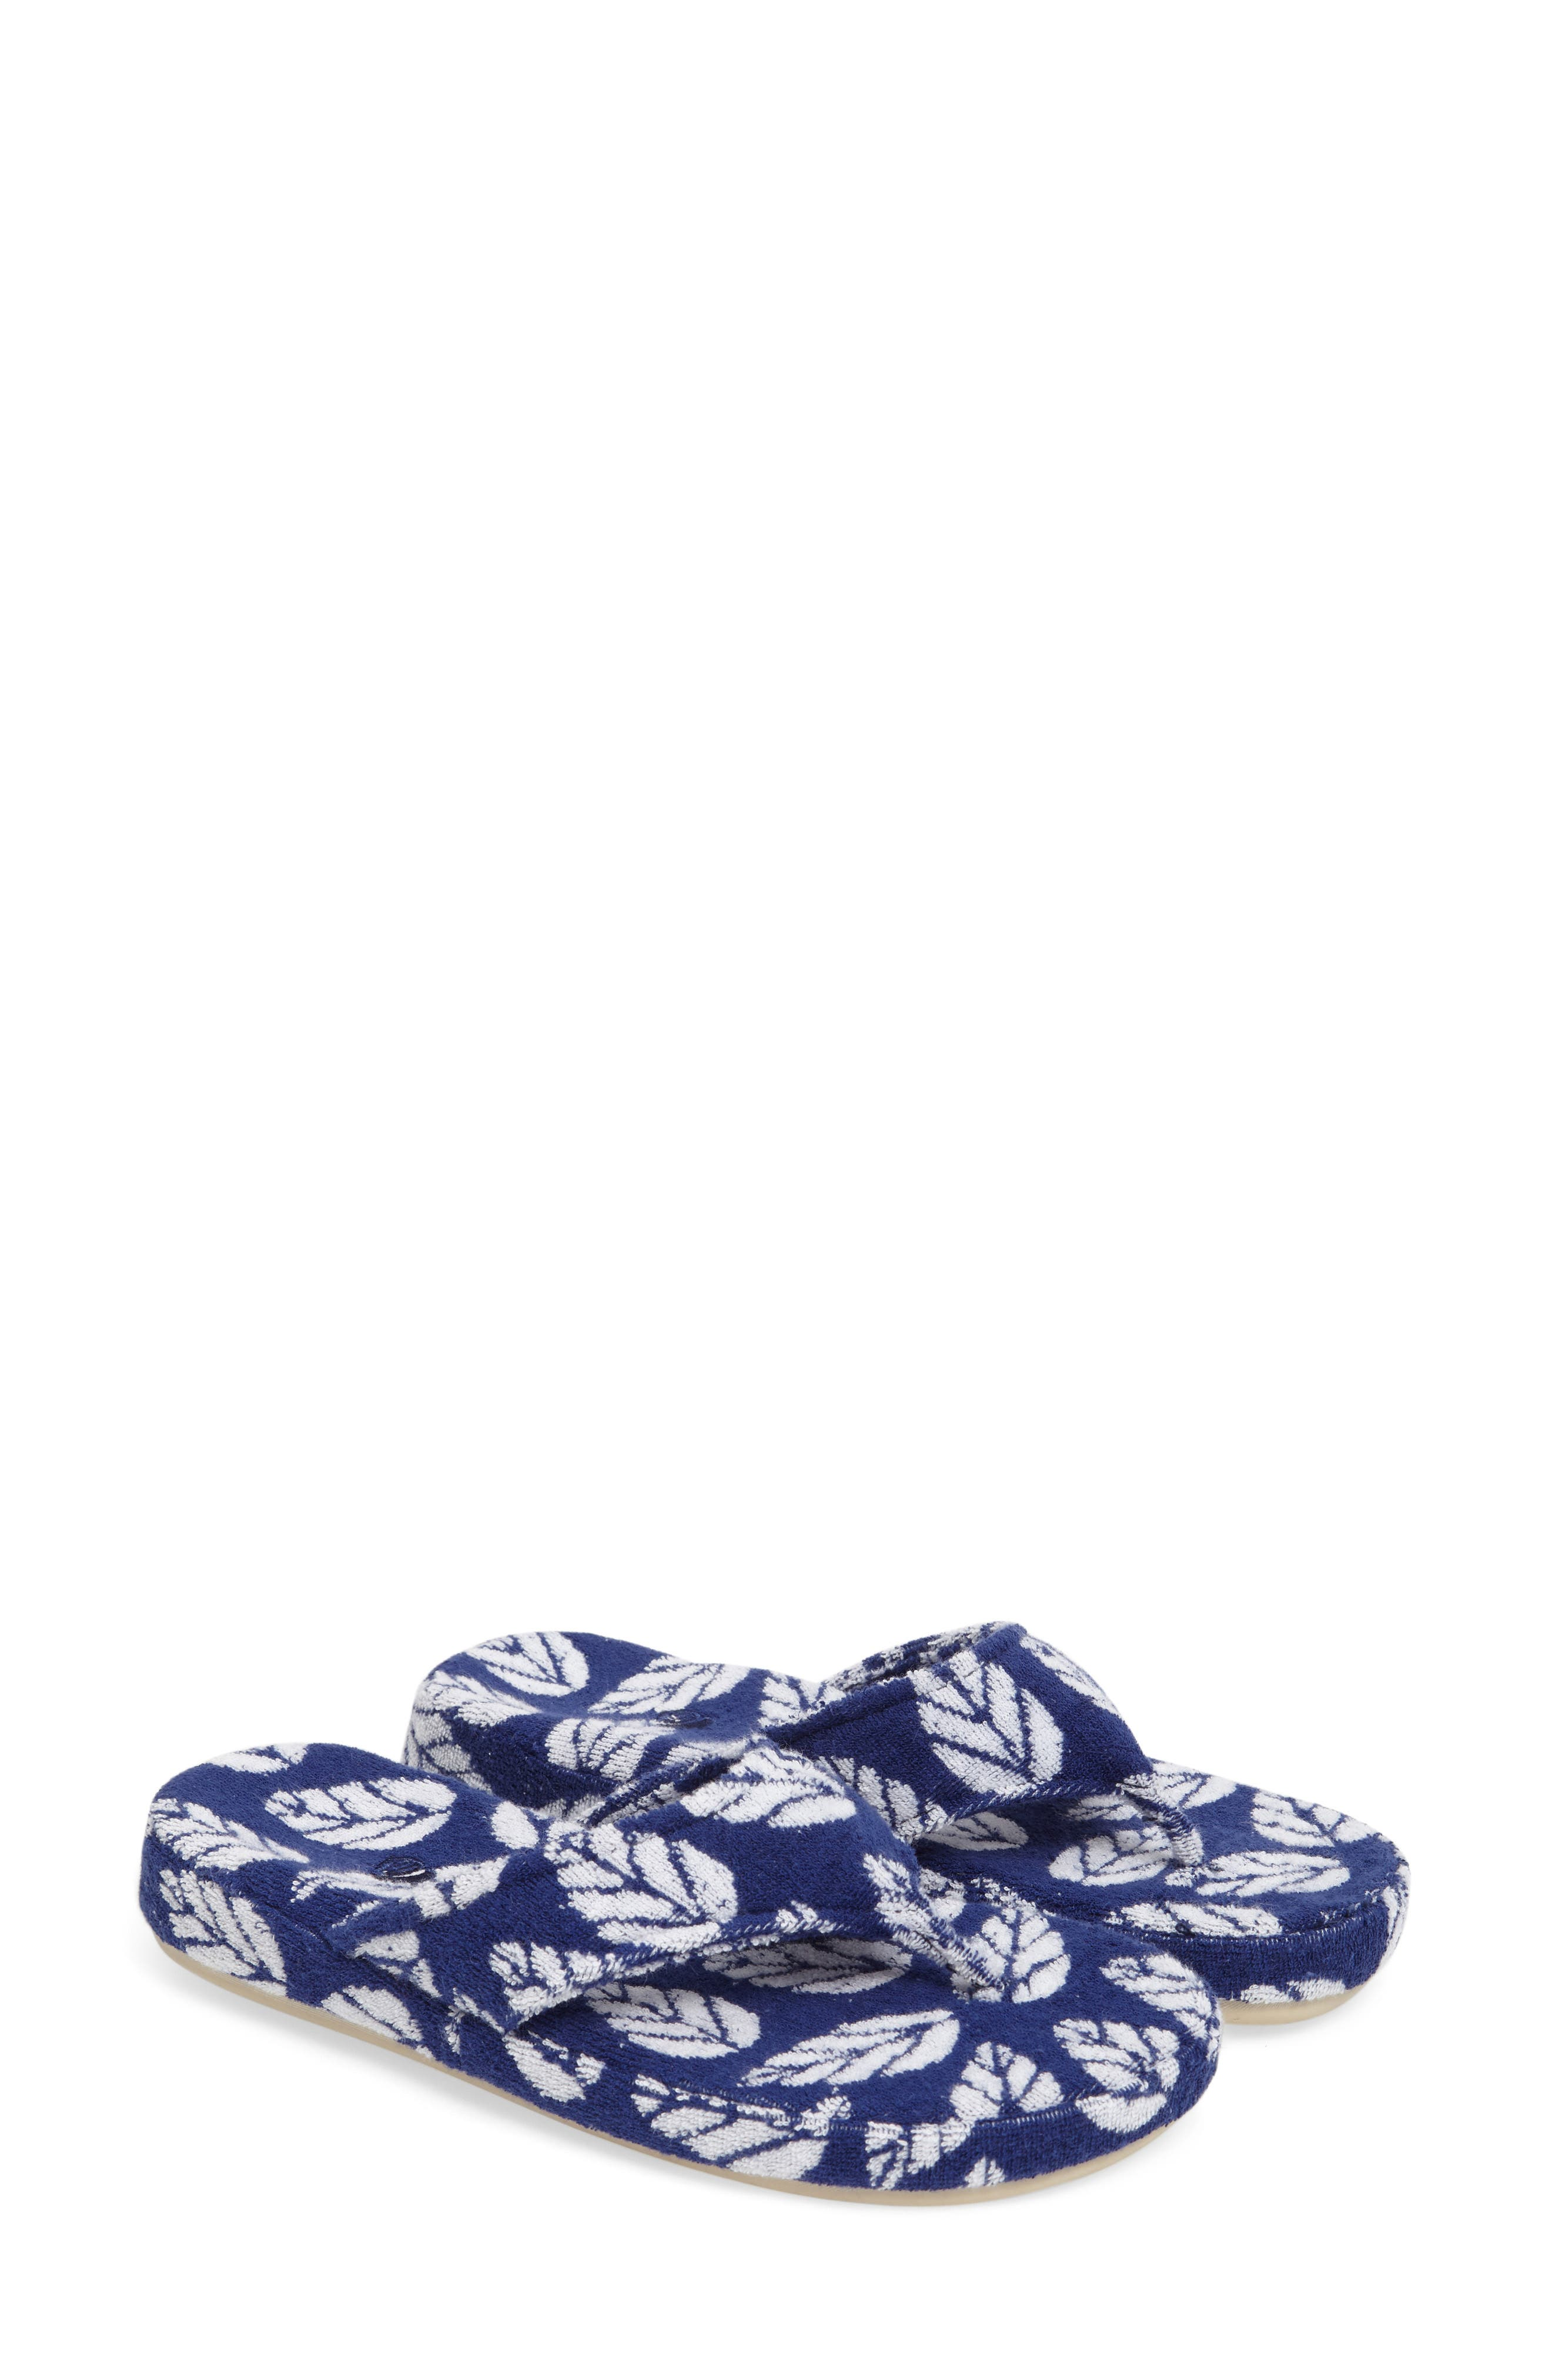 Summerweight Spa Slipper,                             Alternate thumbnail 2, color,                             Navy Leaf Fabric